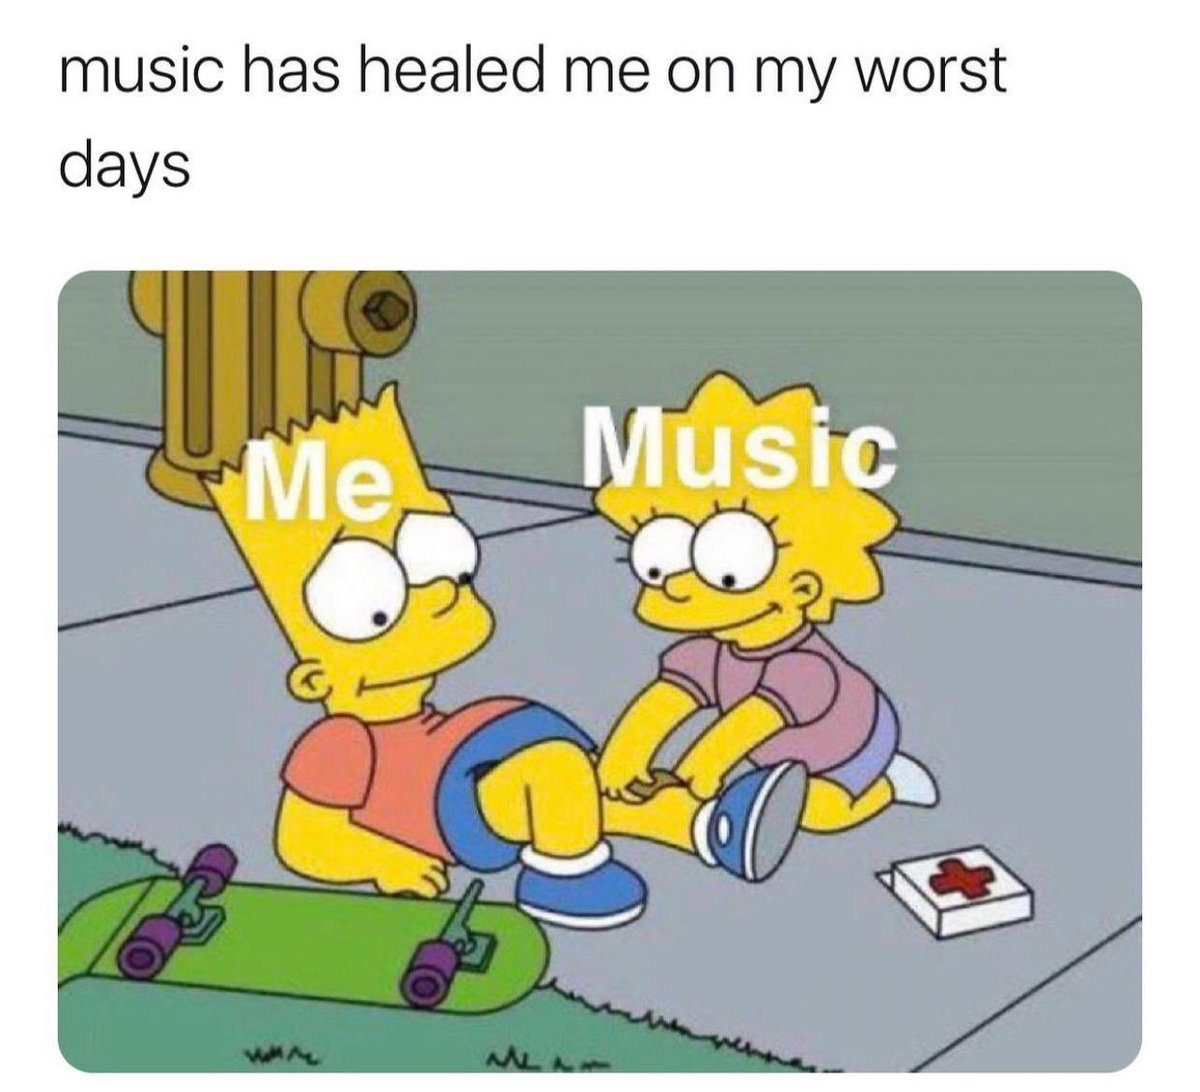 Name a song that helped you on a bad day! 👇🎶😢 https://t.co/FEF1oav2hH